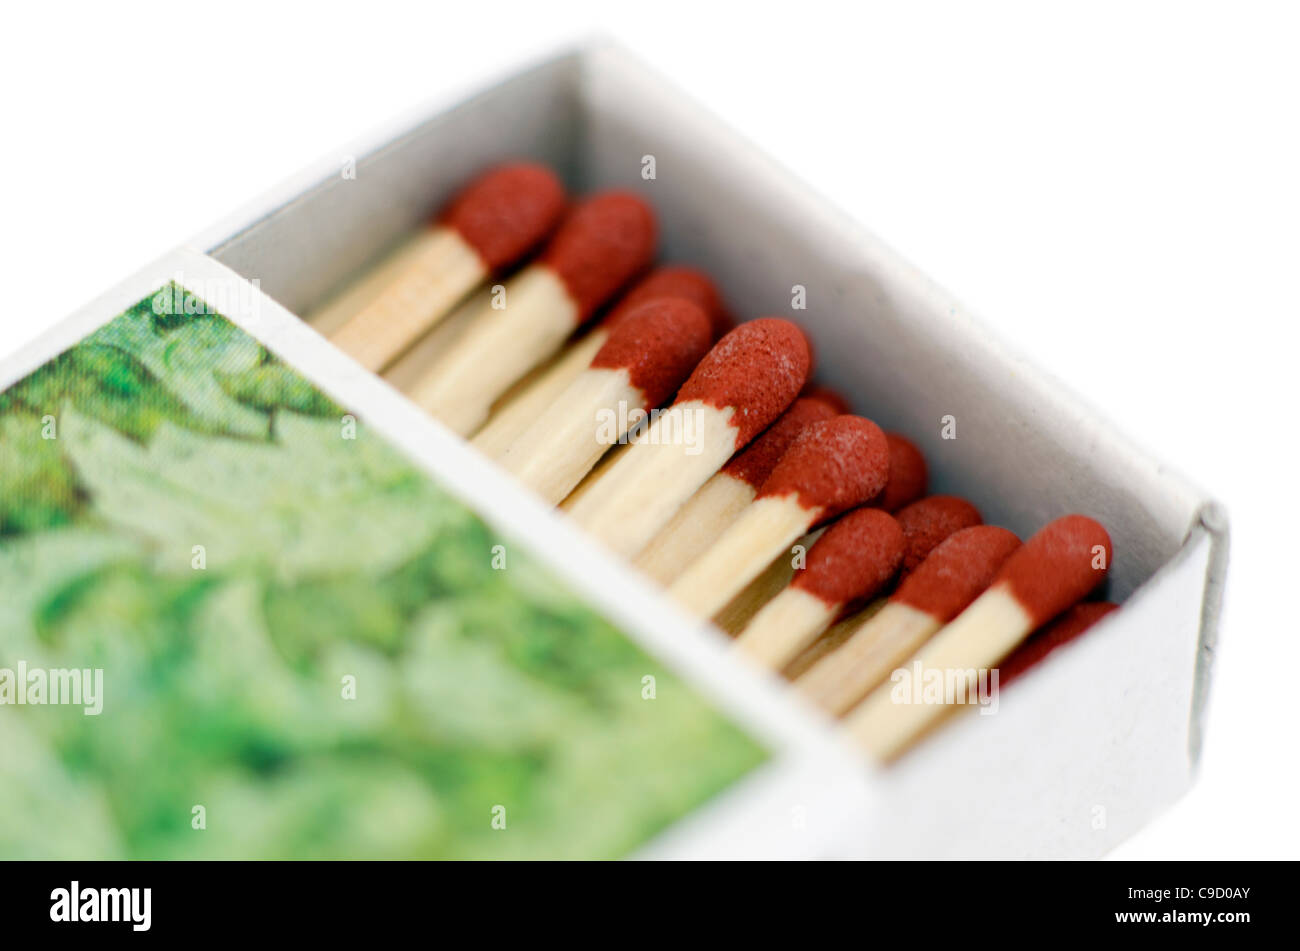 The match box and matches isolated on white background. - Stock Image